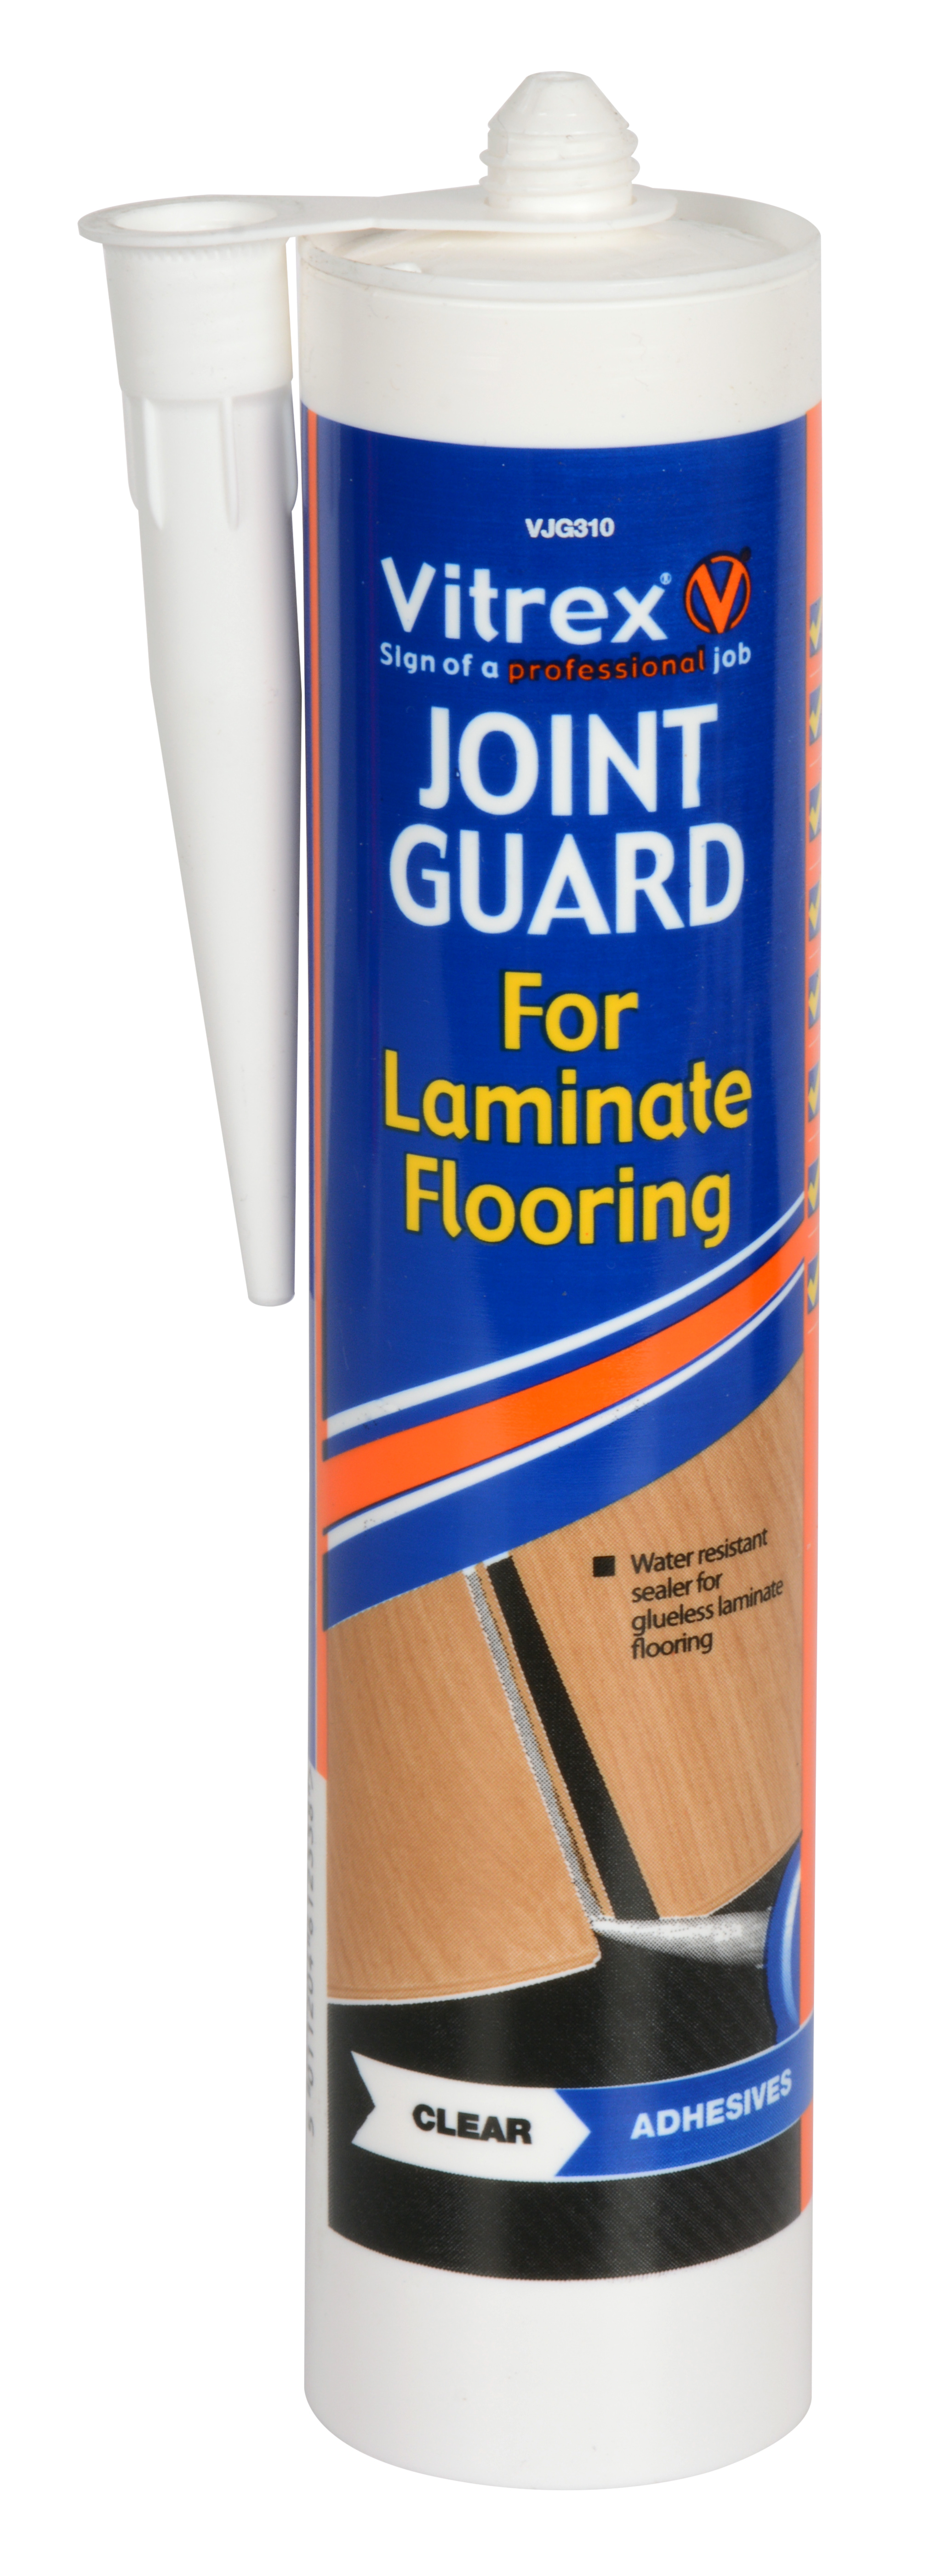 Joint Guard For Laminate Flooring - Clear